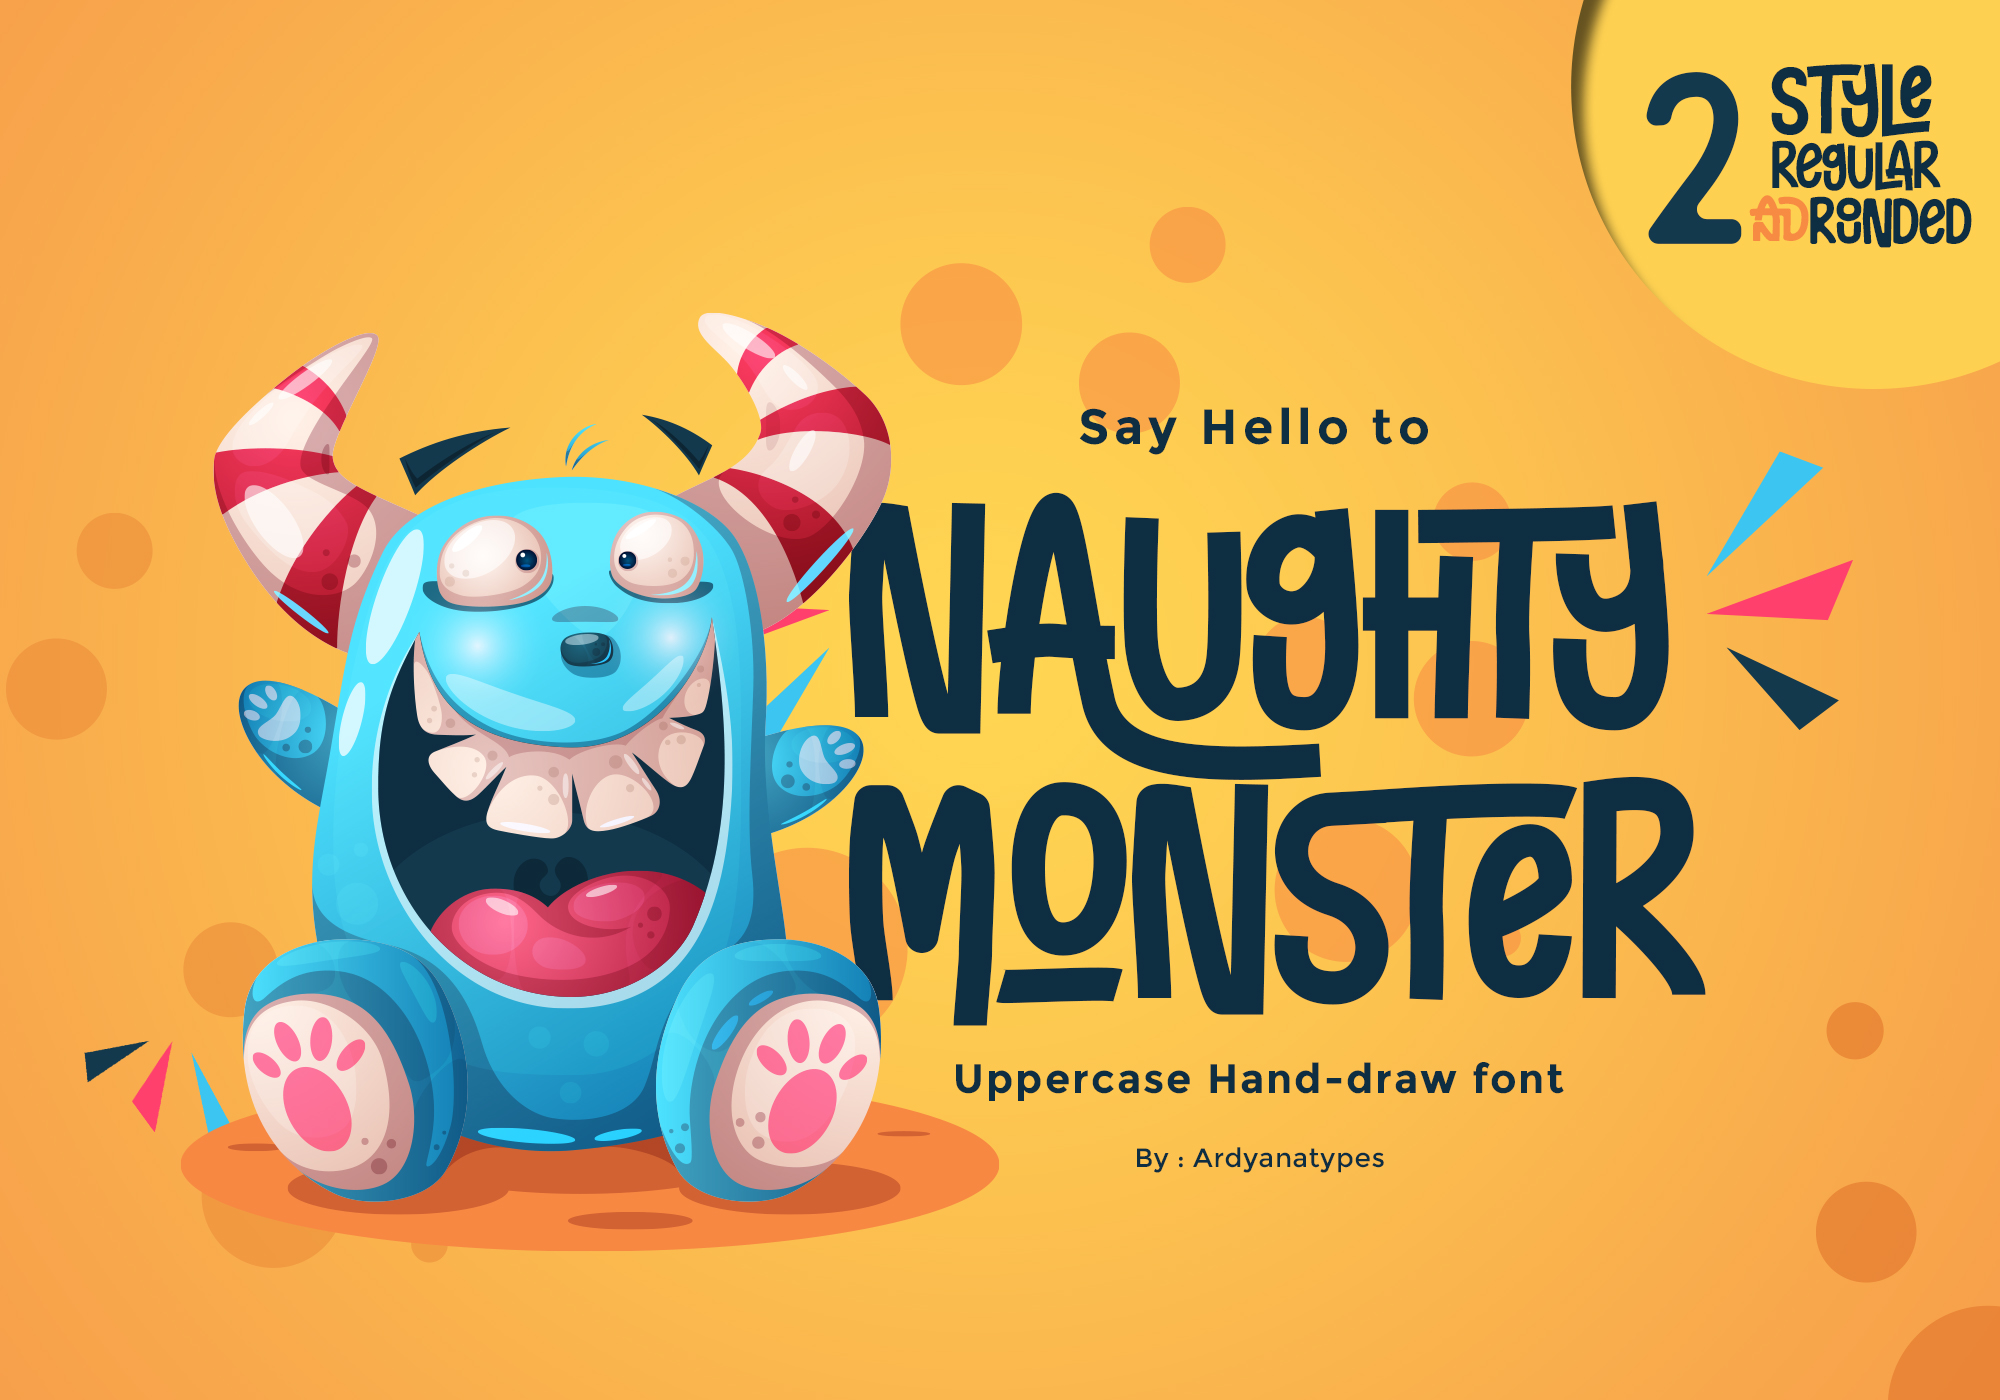 Download Free Naughty Monster Font By Ardyanatypes Creative Fabrica for Cricut Explore, Silhouette and other cutting machines.